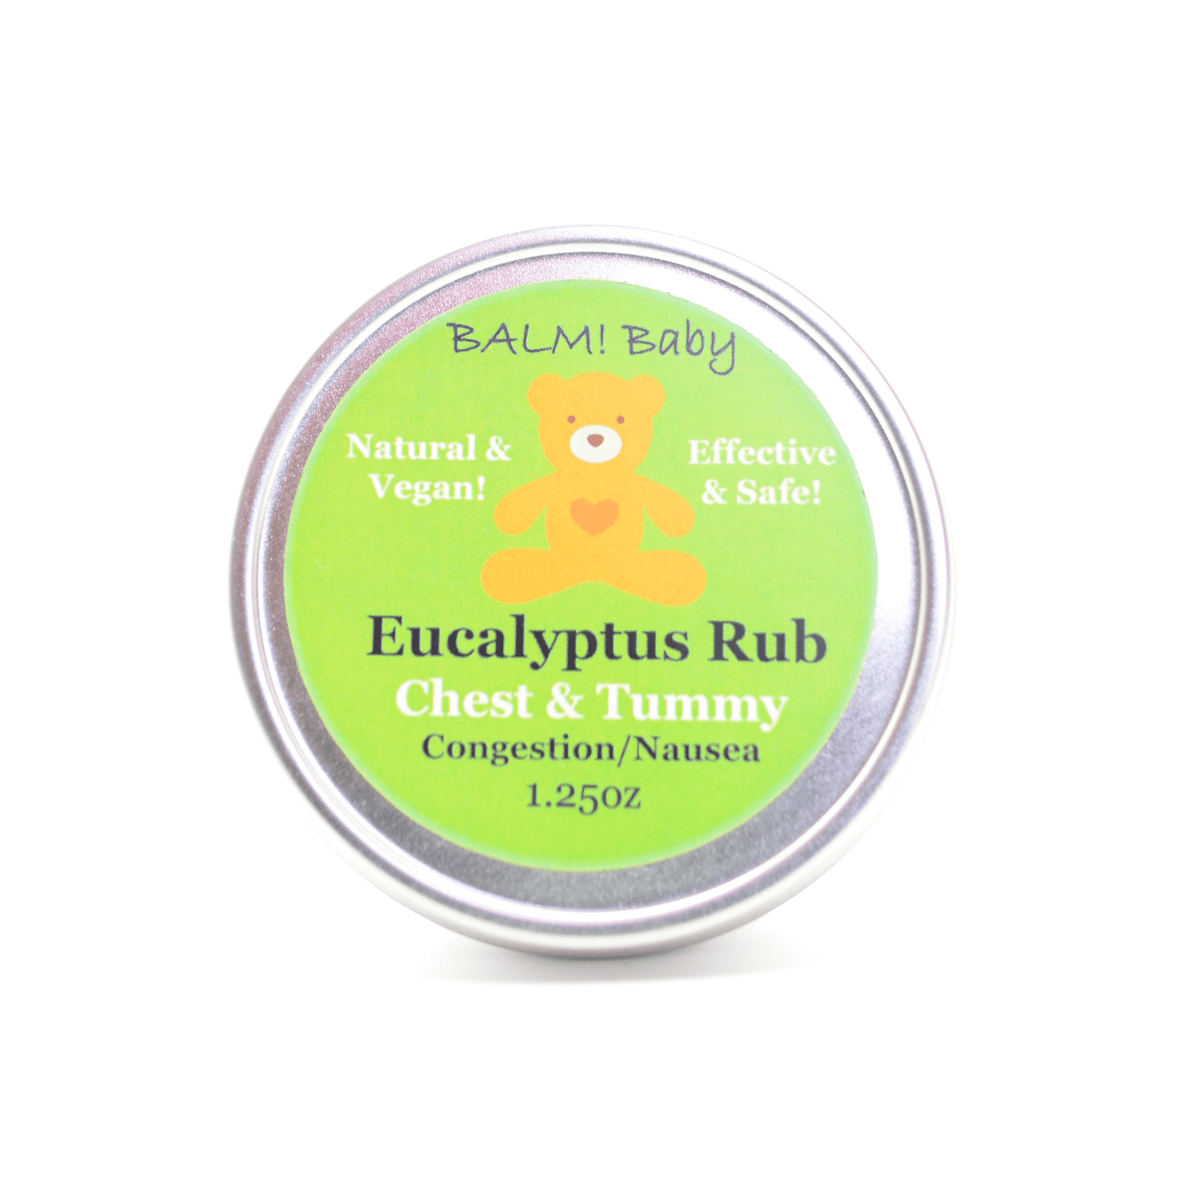 Balm! Baby Eucalyptus Clearing Rub .5 oz Travel Tin - Eucalyptus